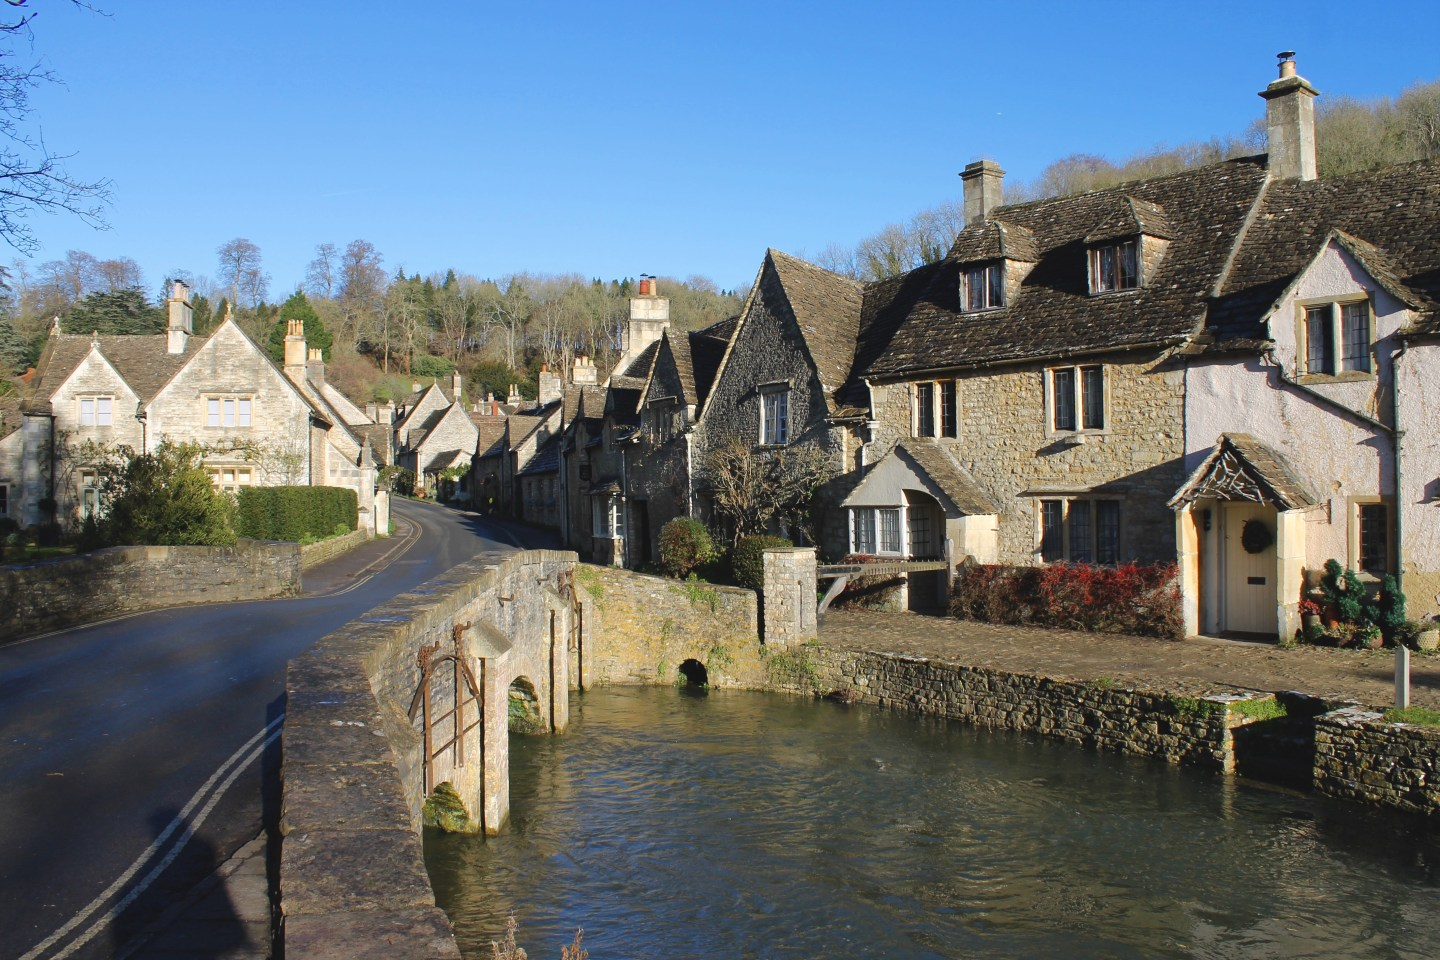 Christmastime in the Cotswolds